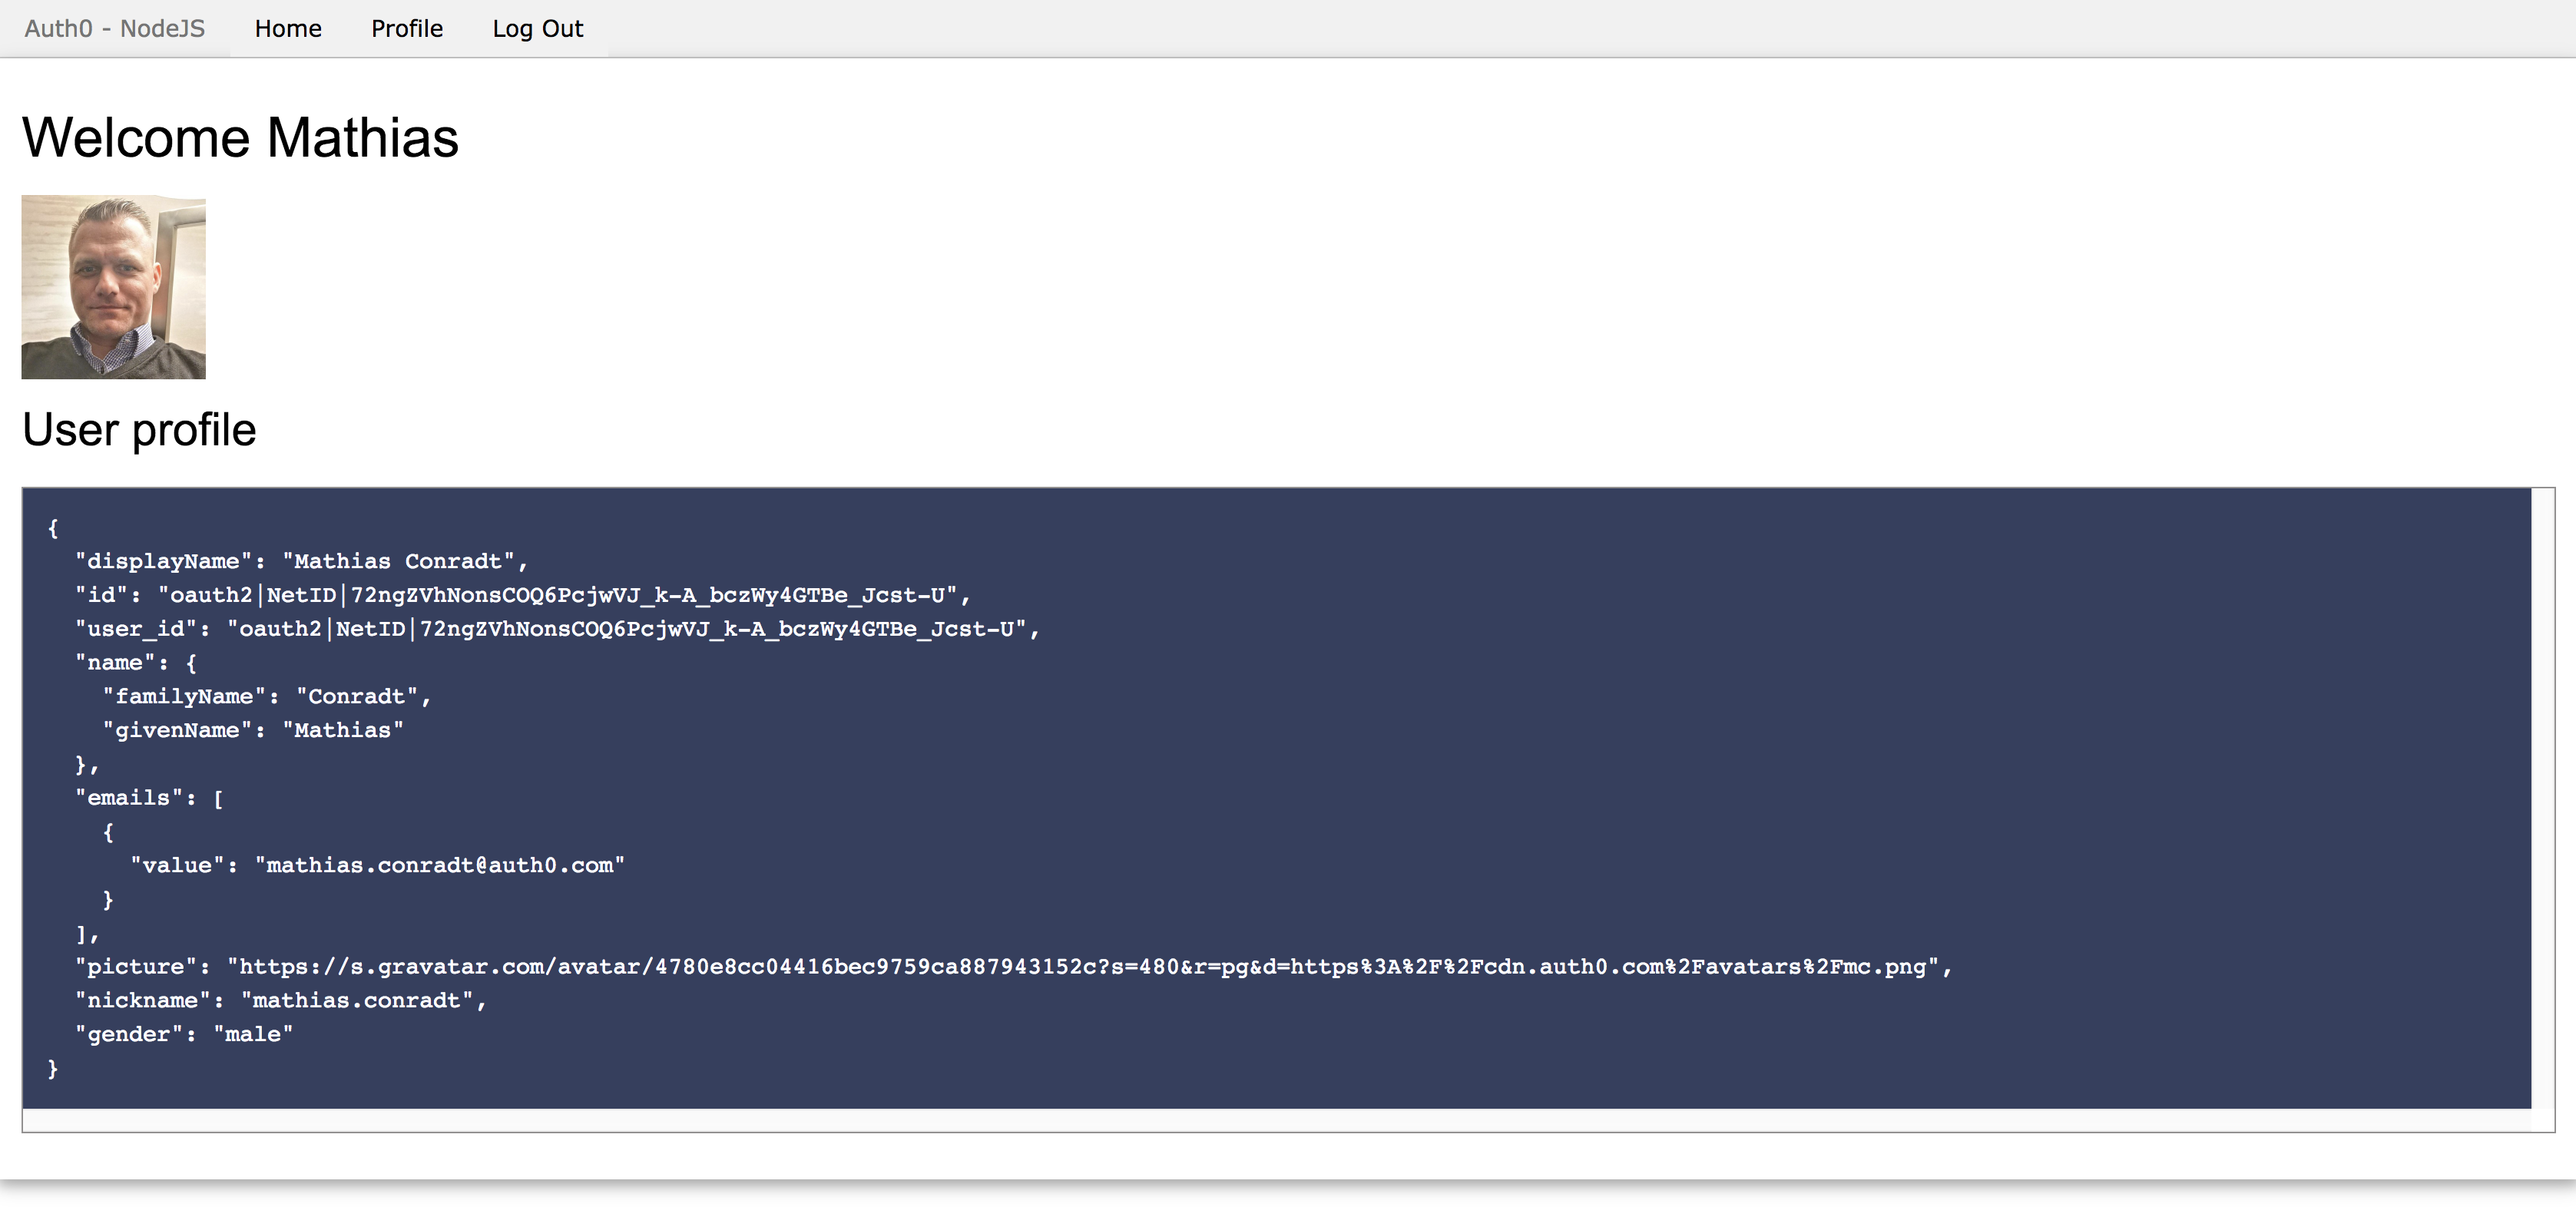 Logged into a demo app using netID